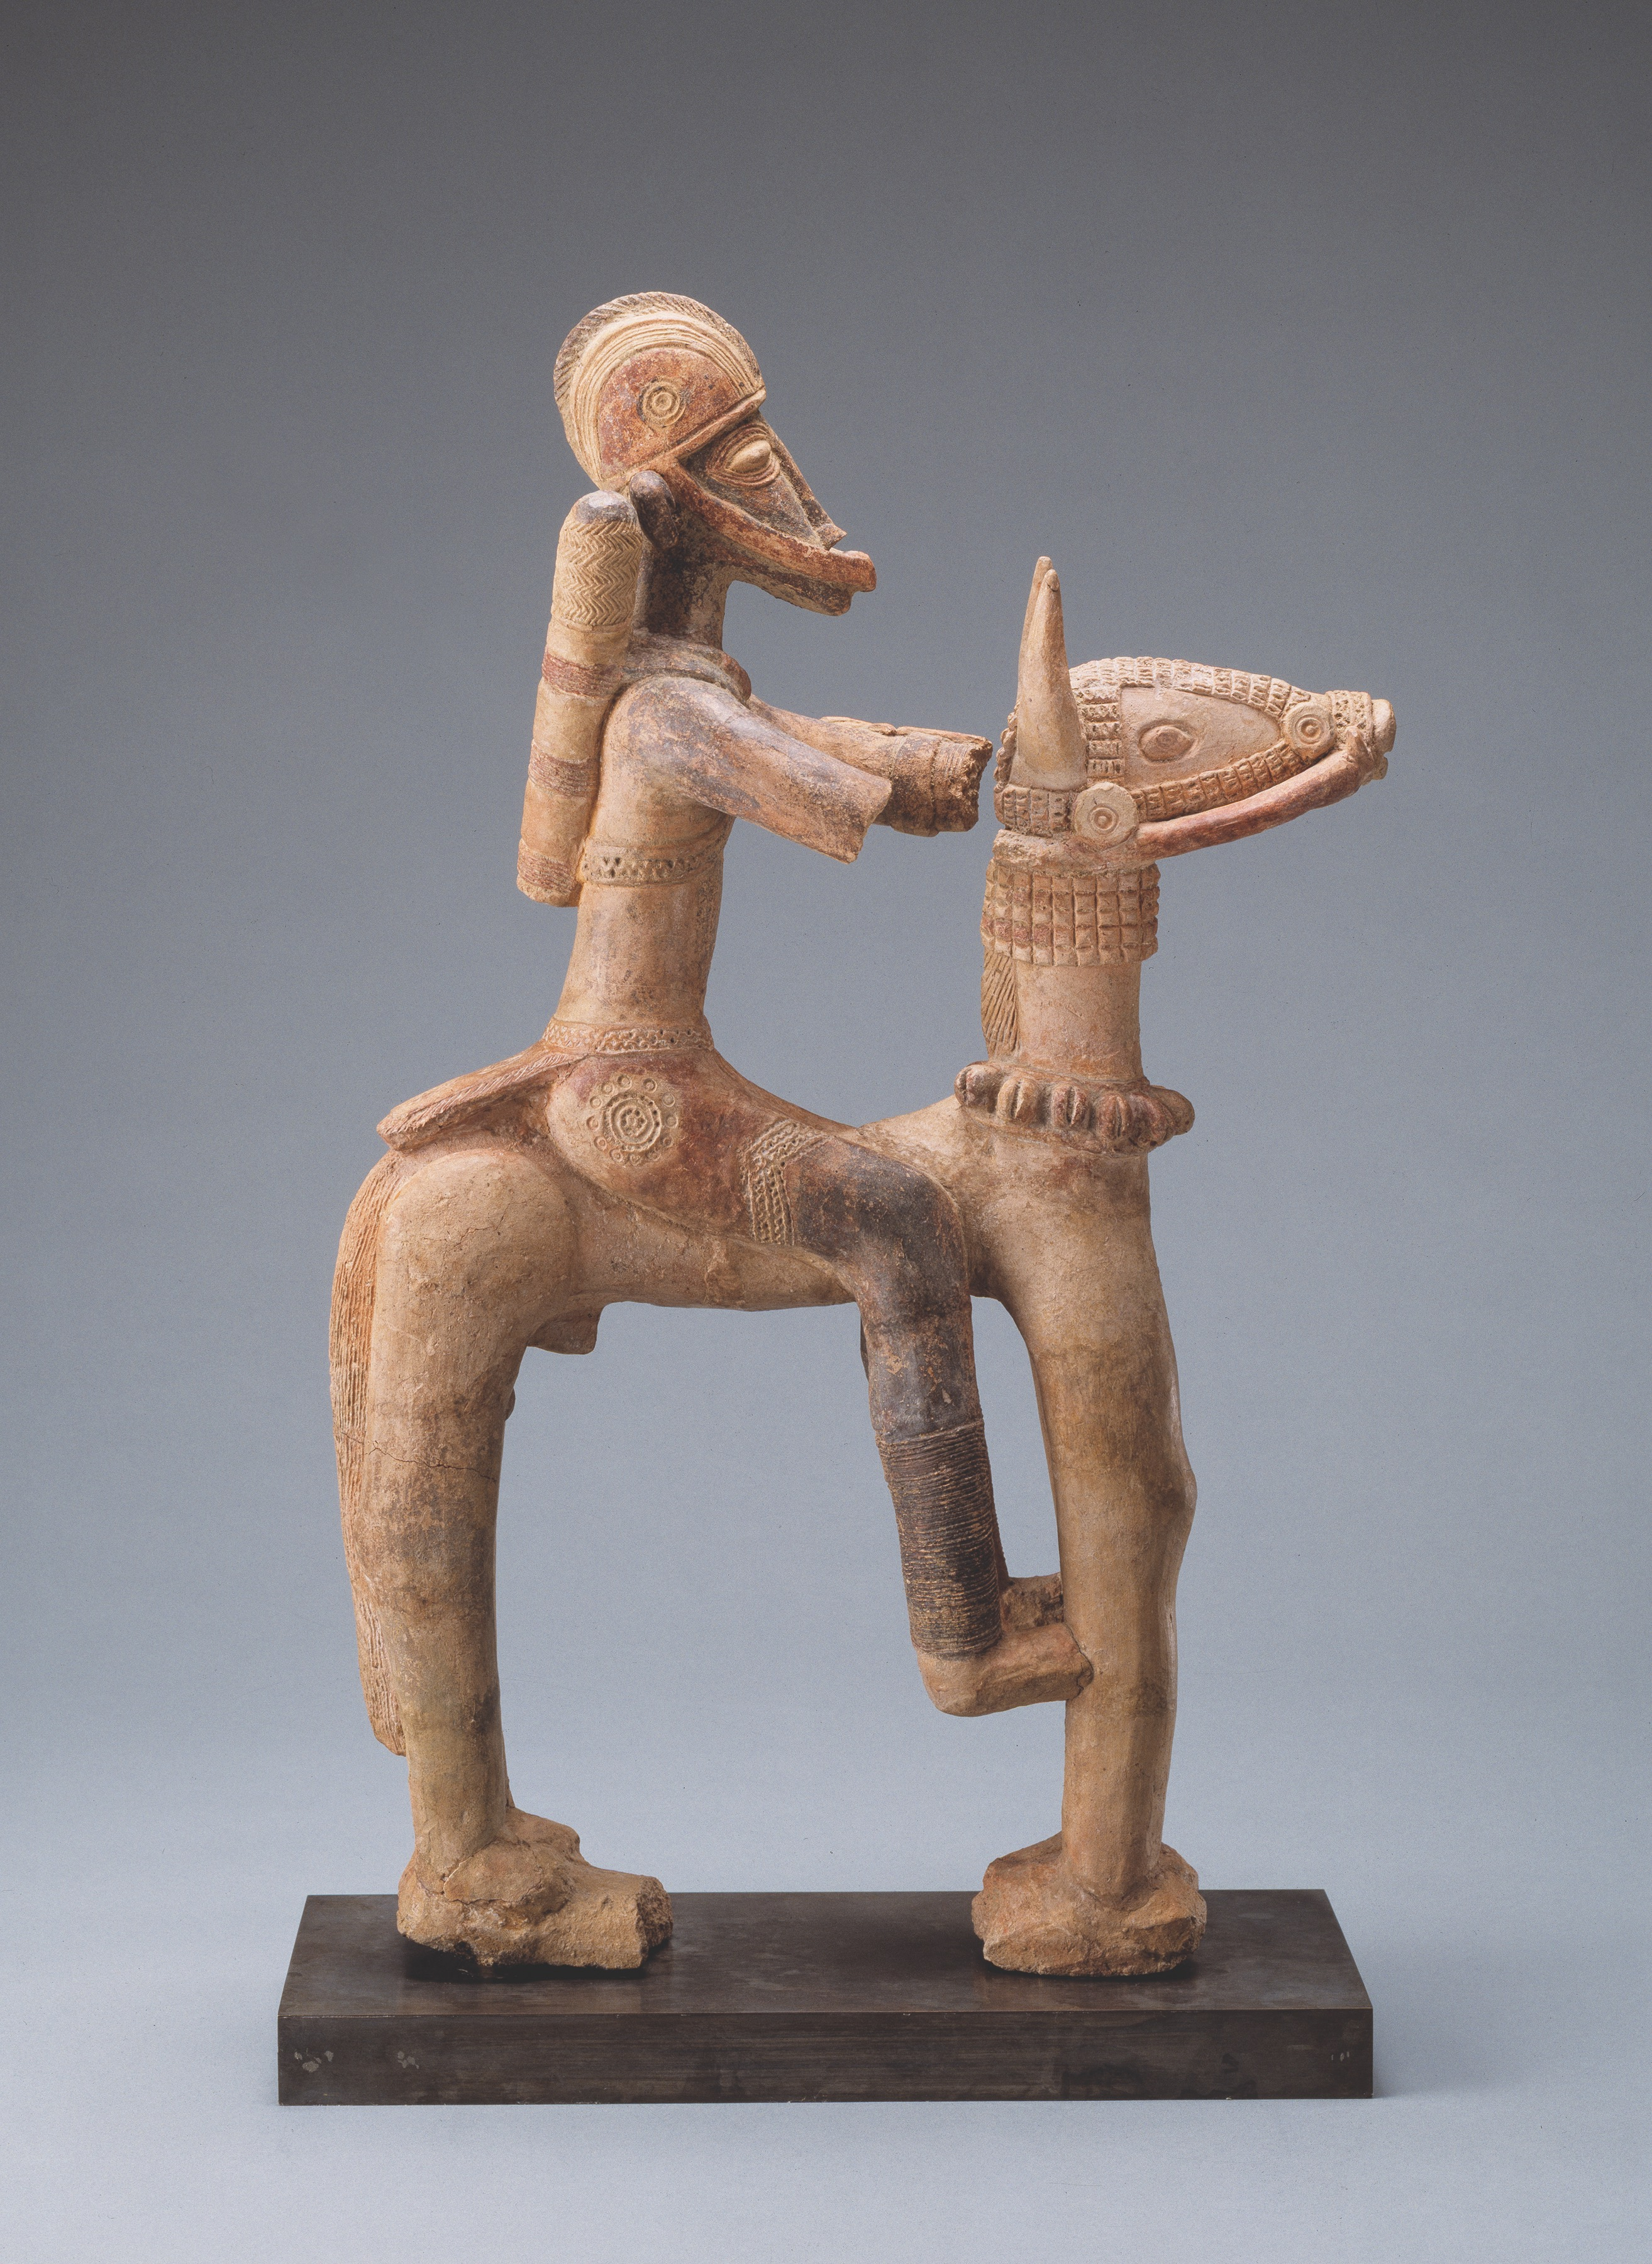 Sculpture of man sitting on a camel